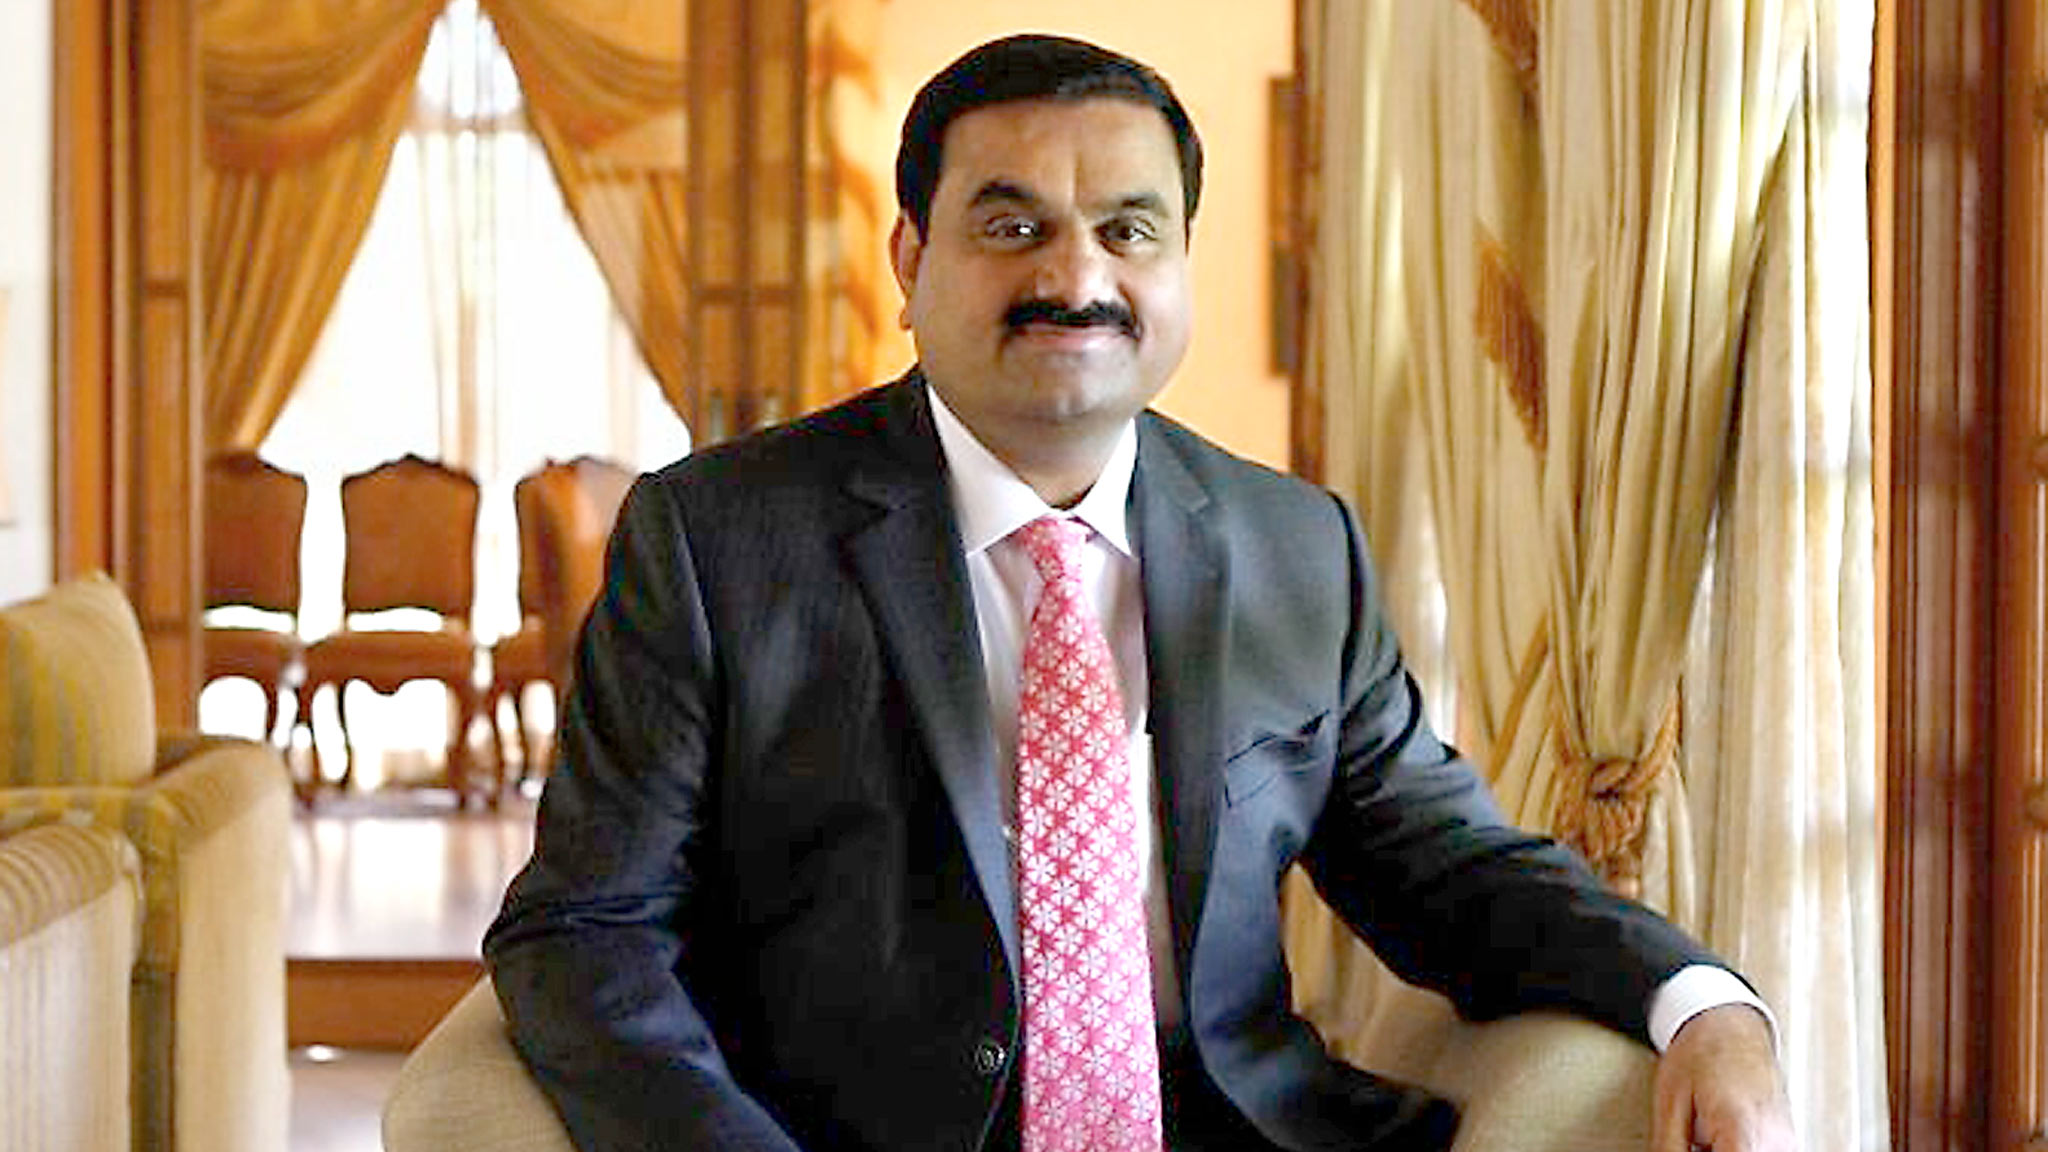 Adani Group issues clarification over frozen accounts, says media report  'blatantly erroneous'